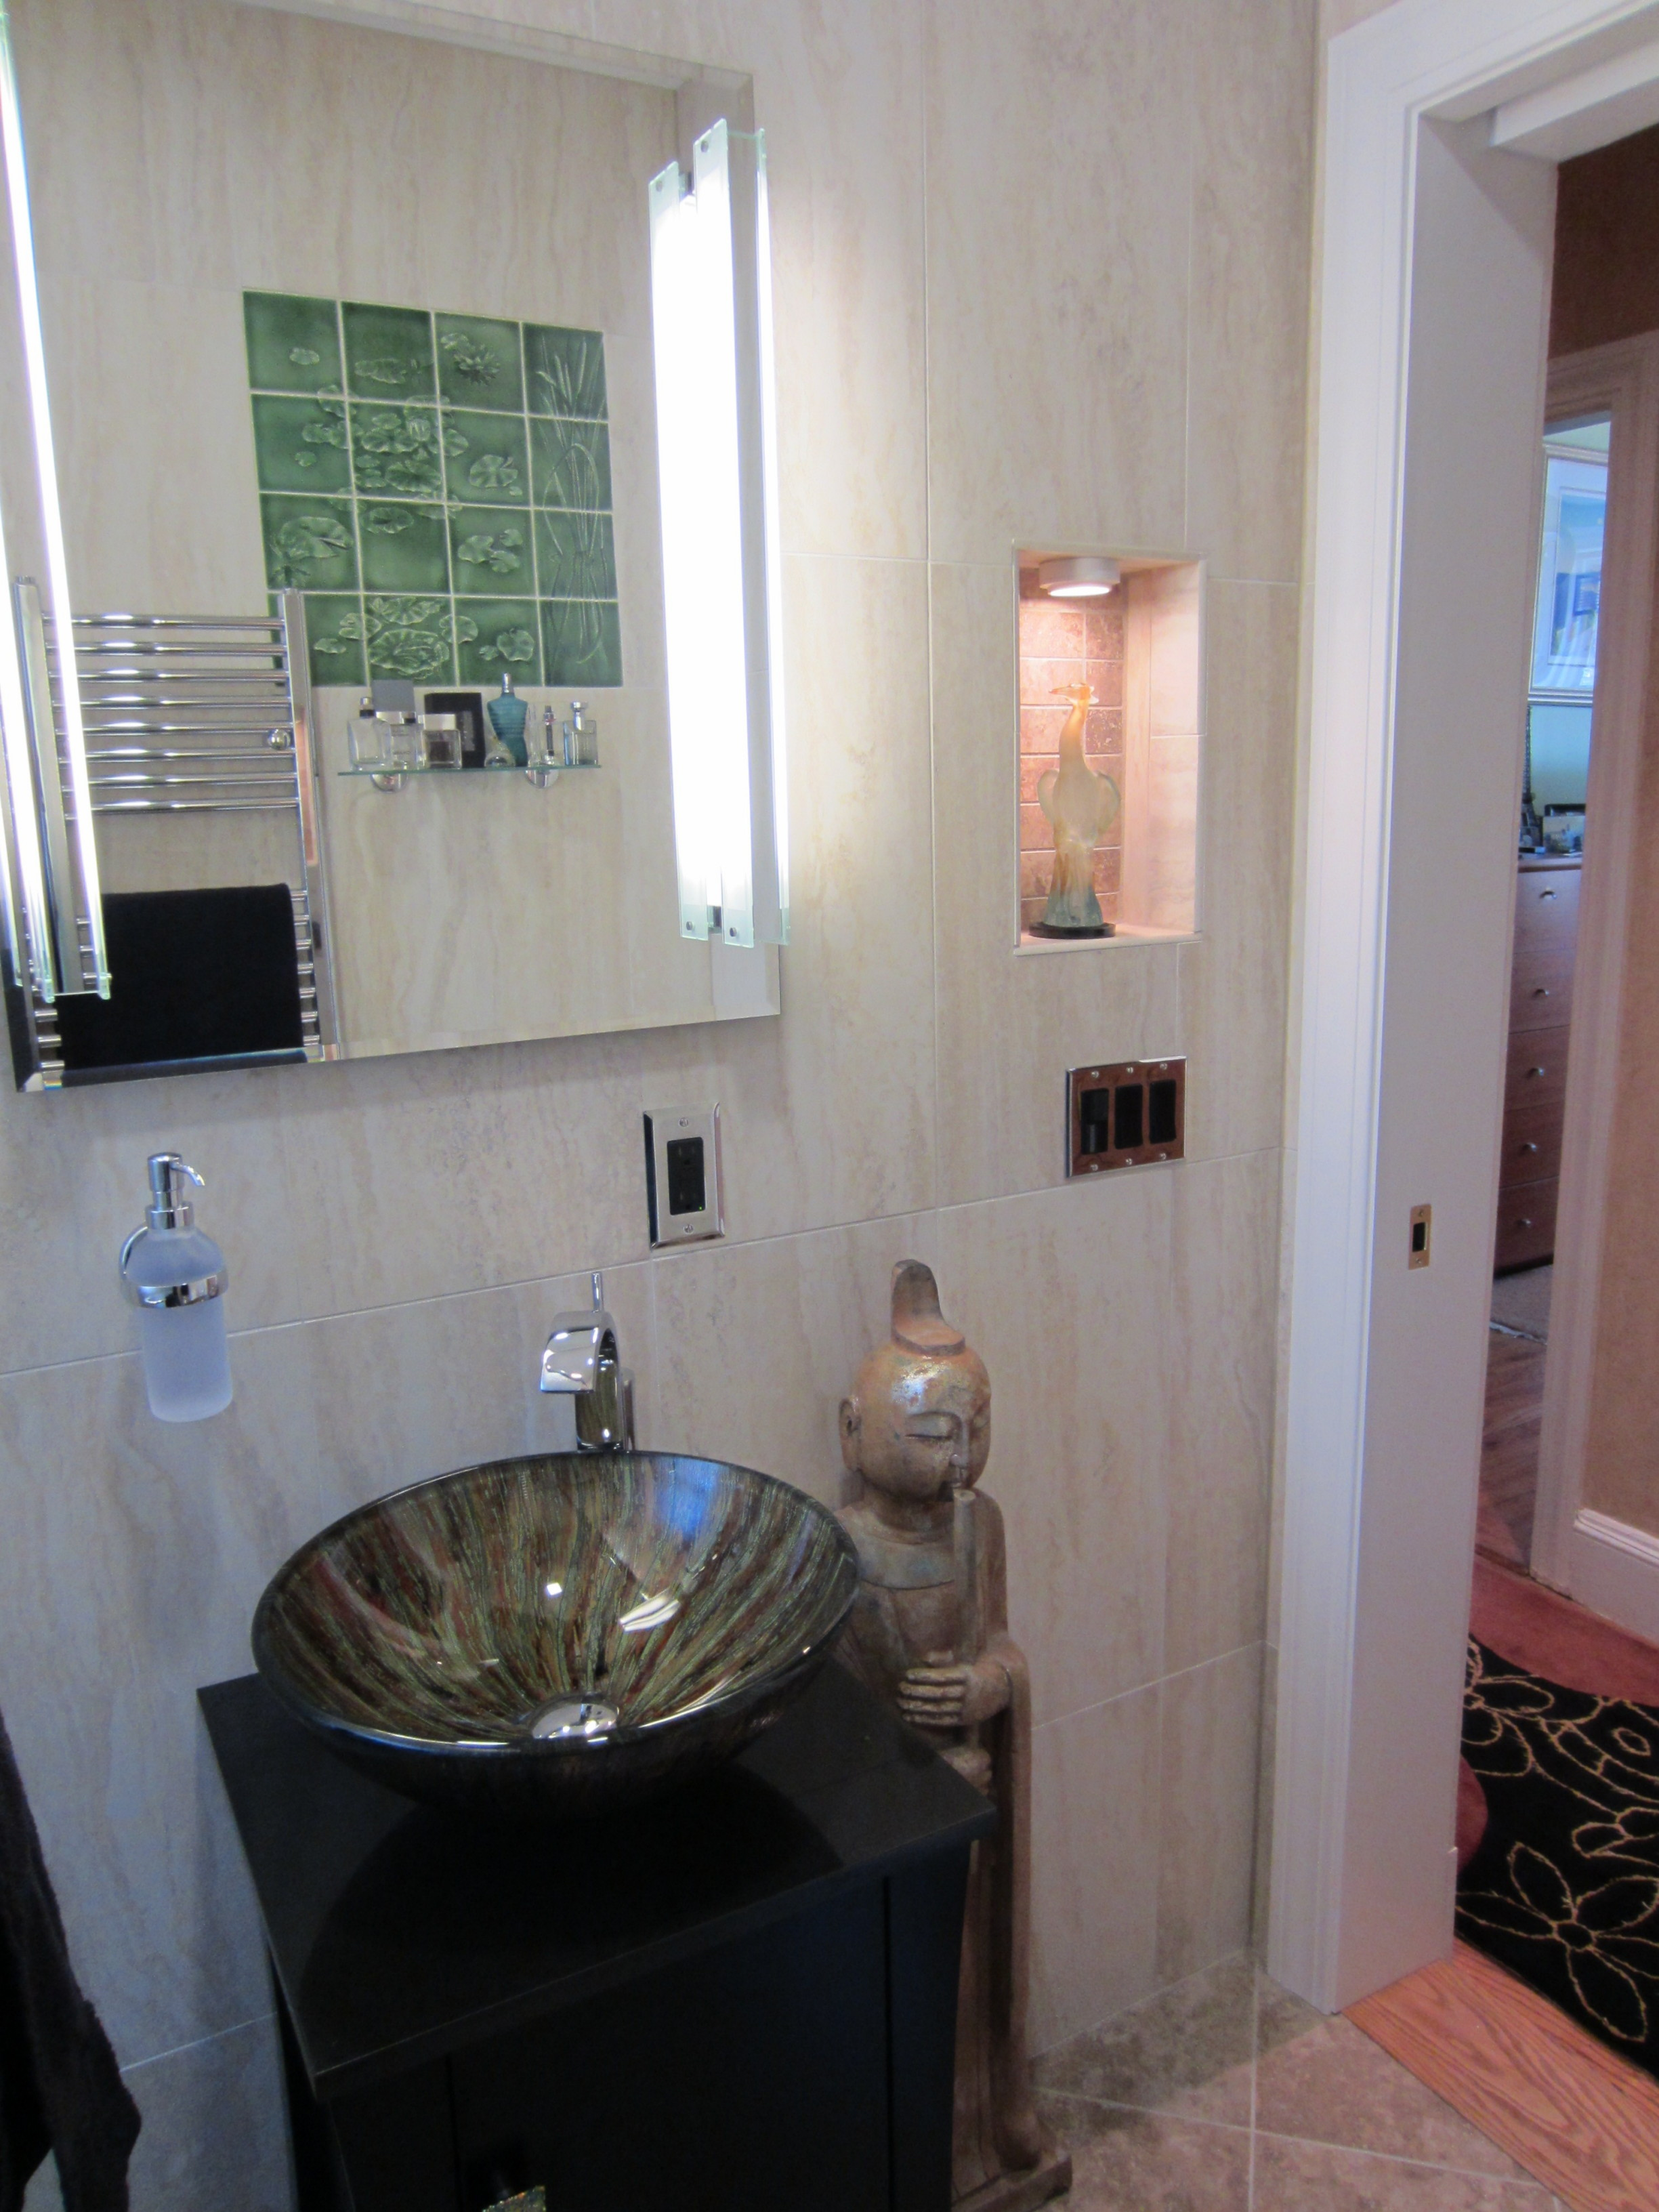 Bathroom remodeling boston andover north andover for Bath remodel nh